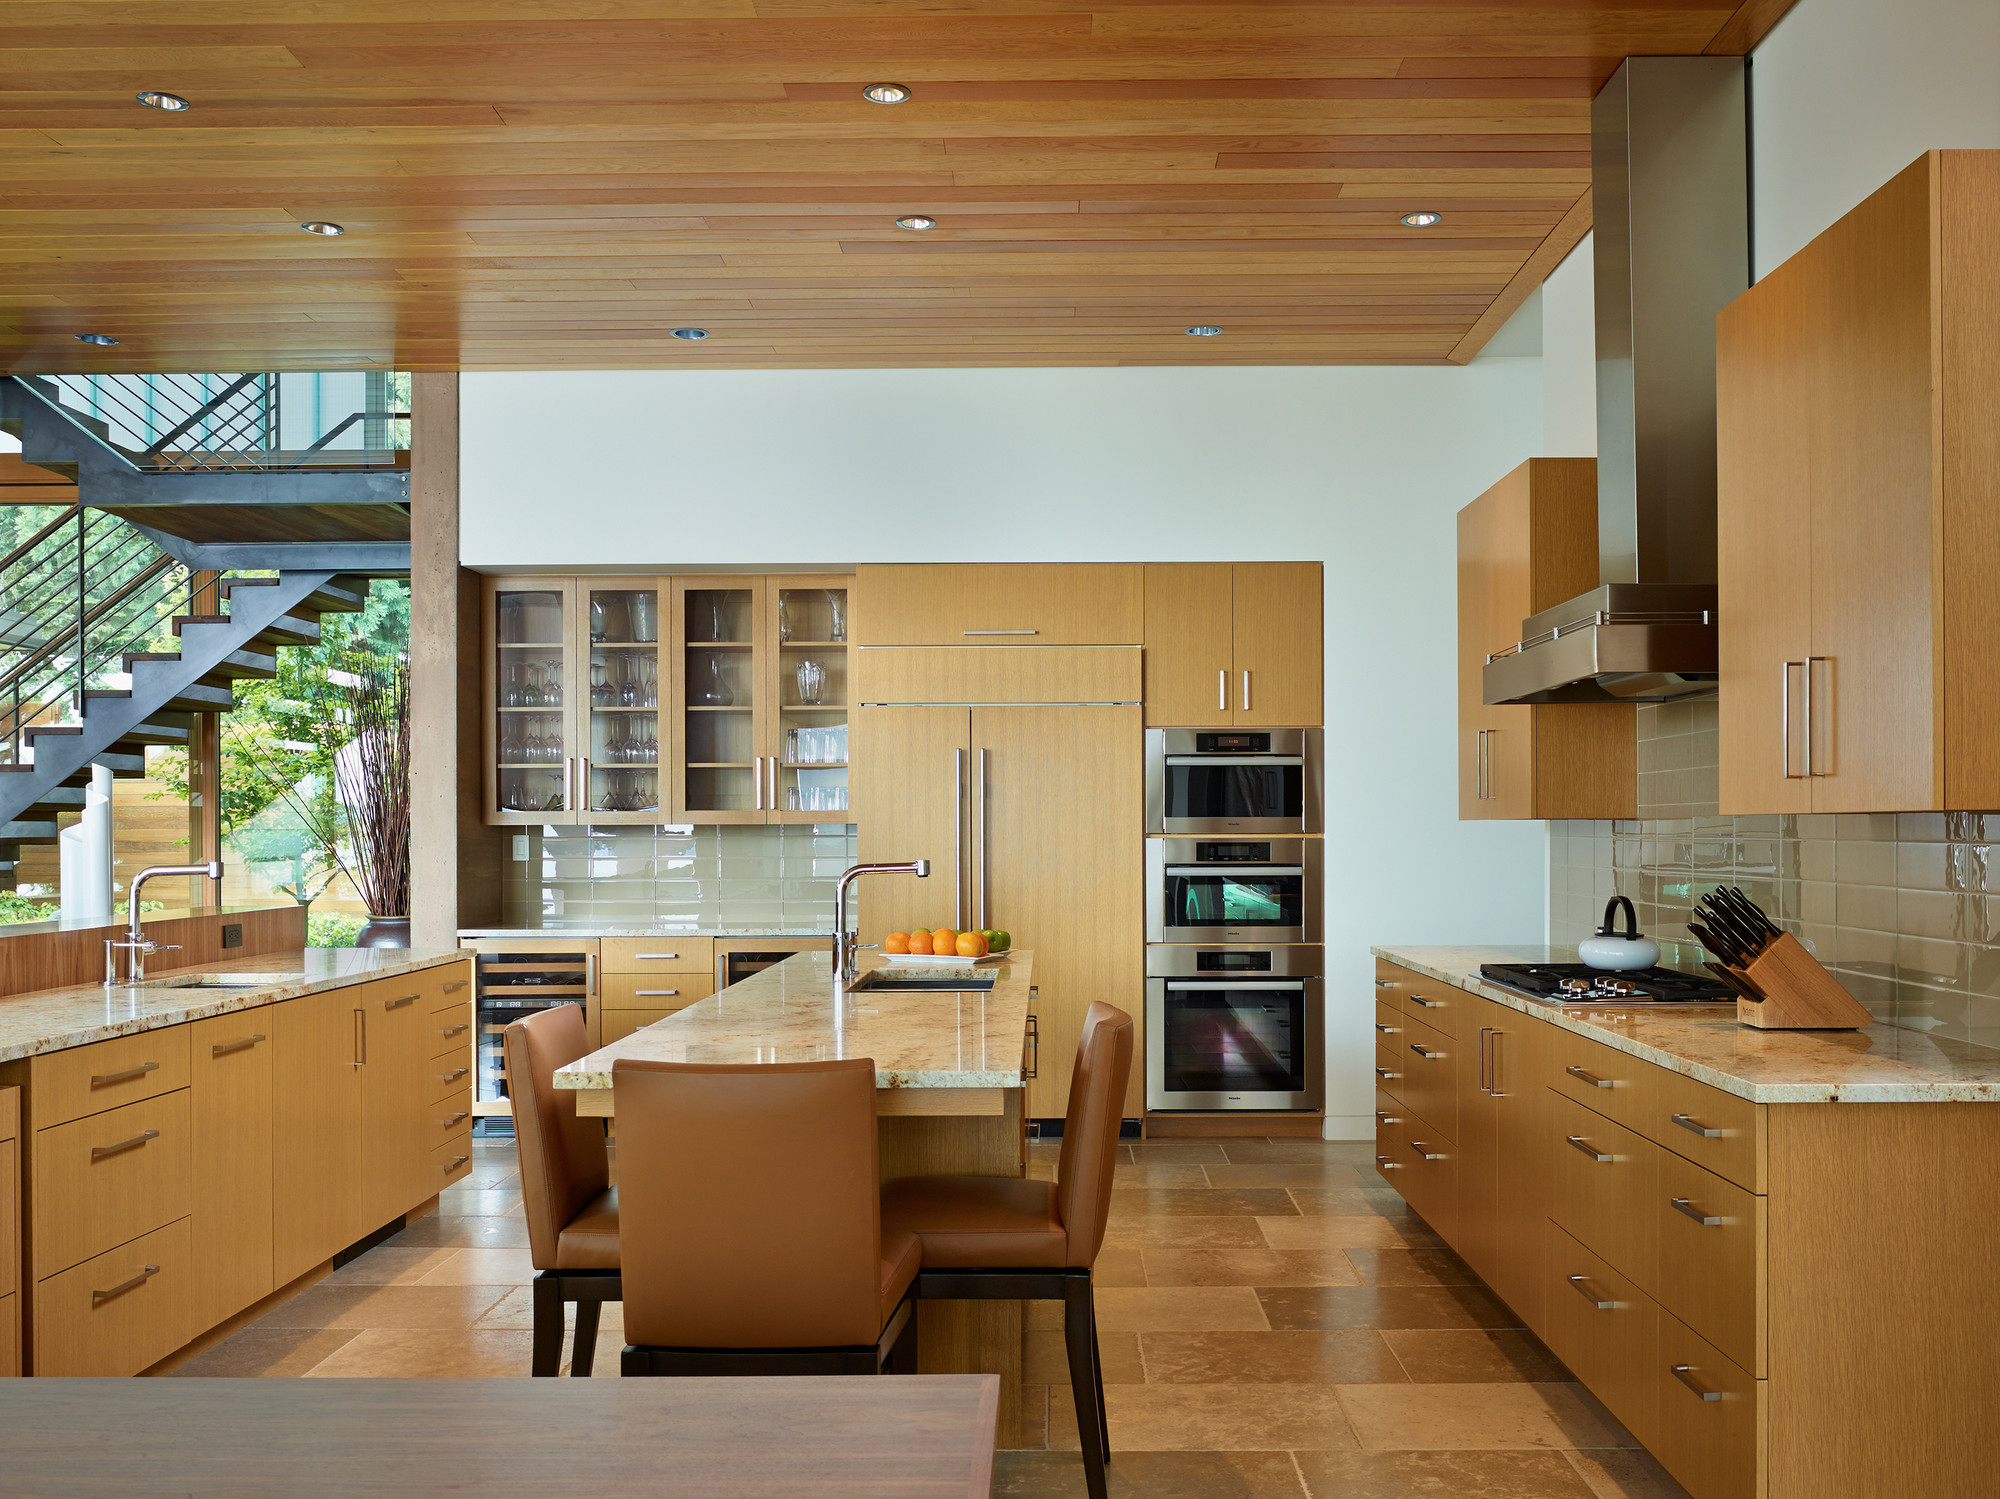 courtyard house is a contemporary residence in seattle by deforest  - the courtyard house is a contemporary residence in seattle by deforestarchitects